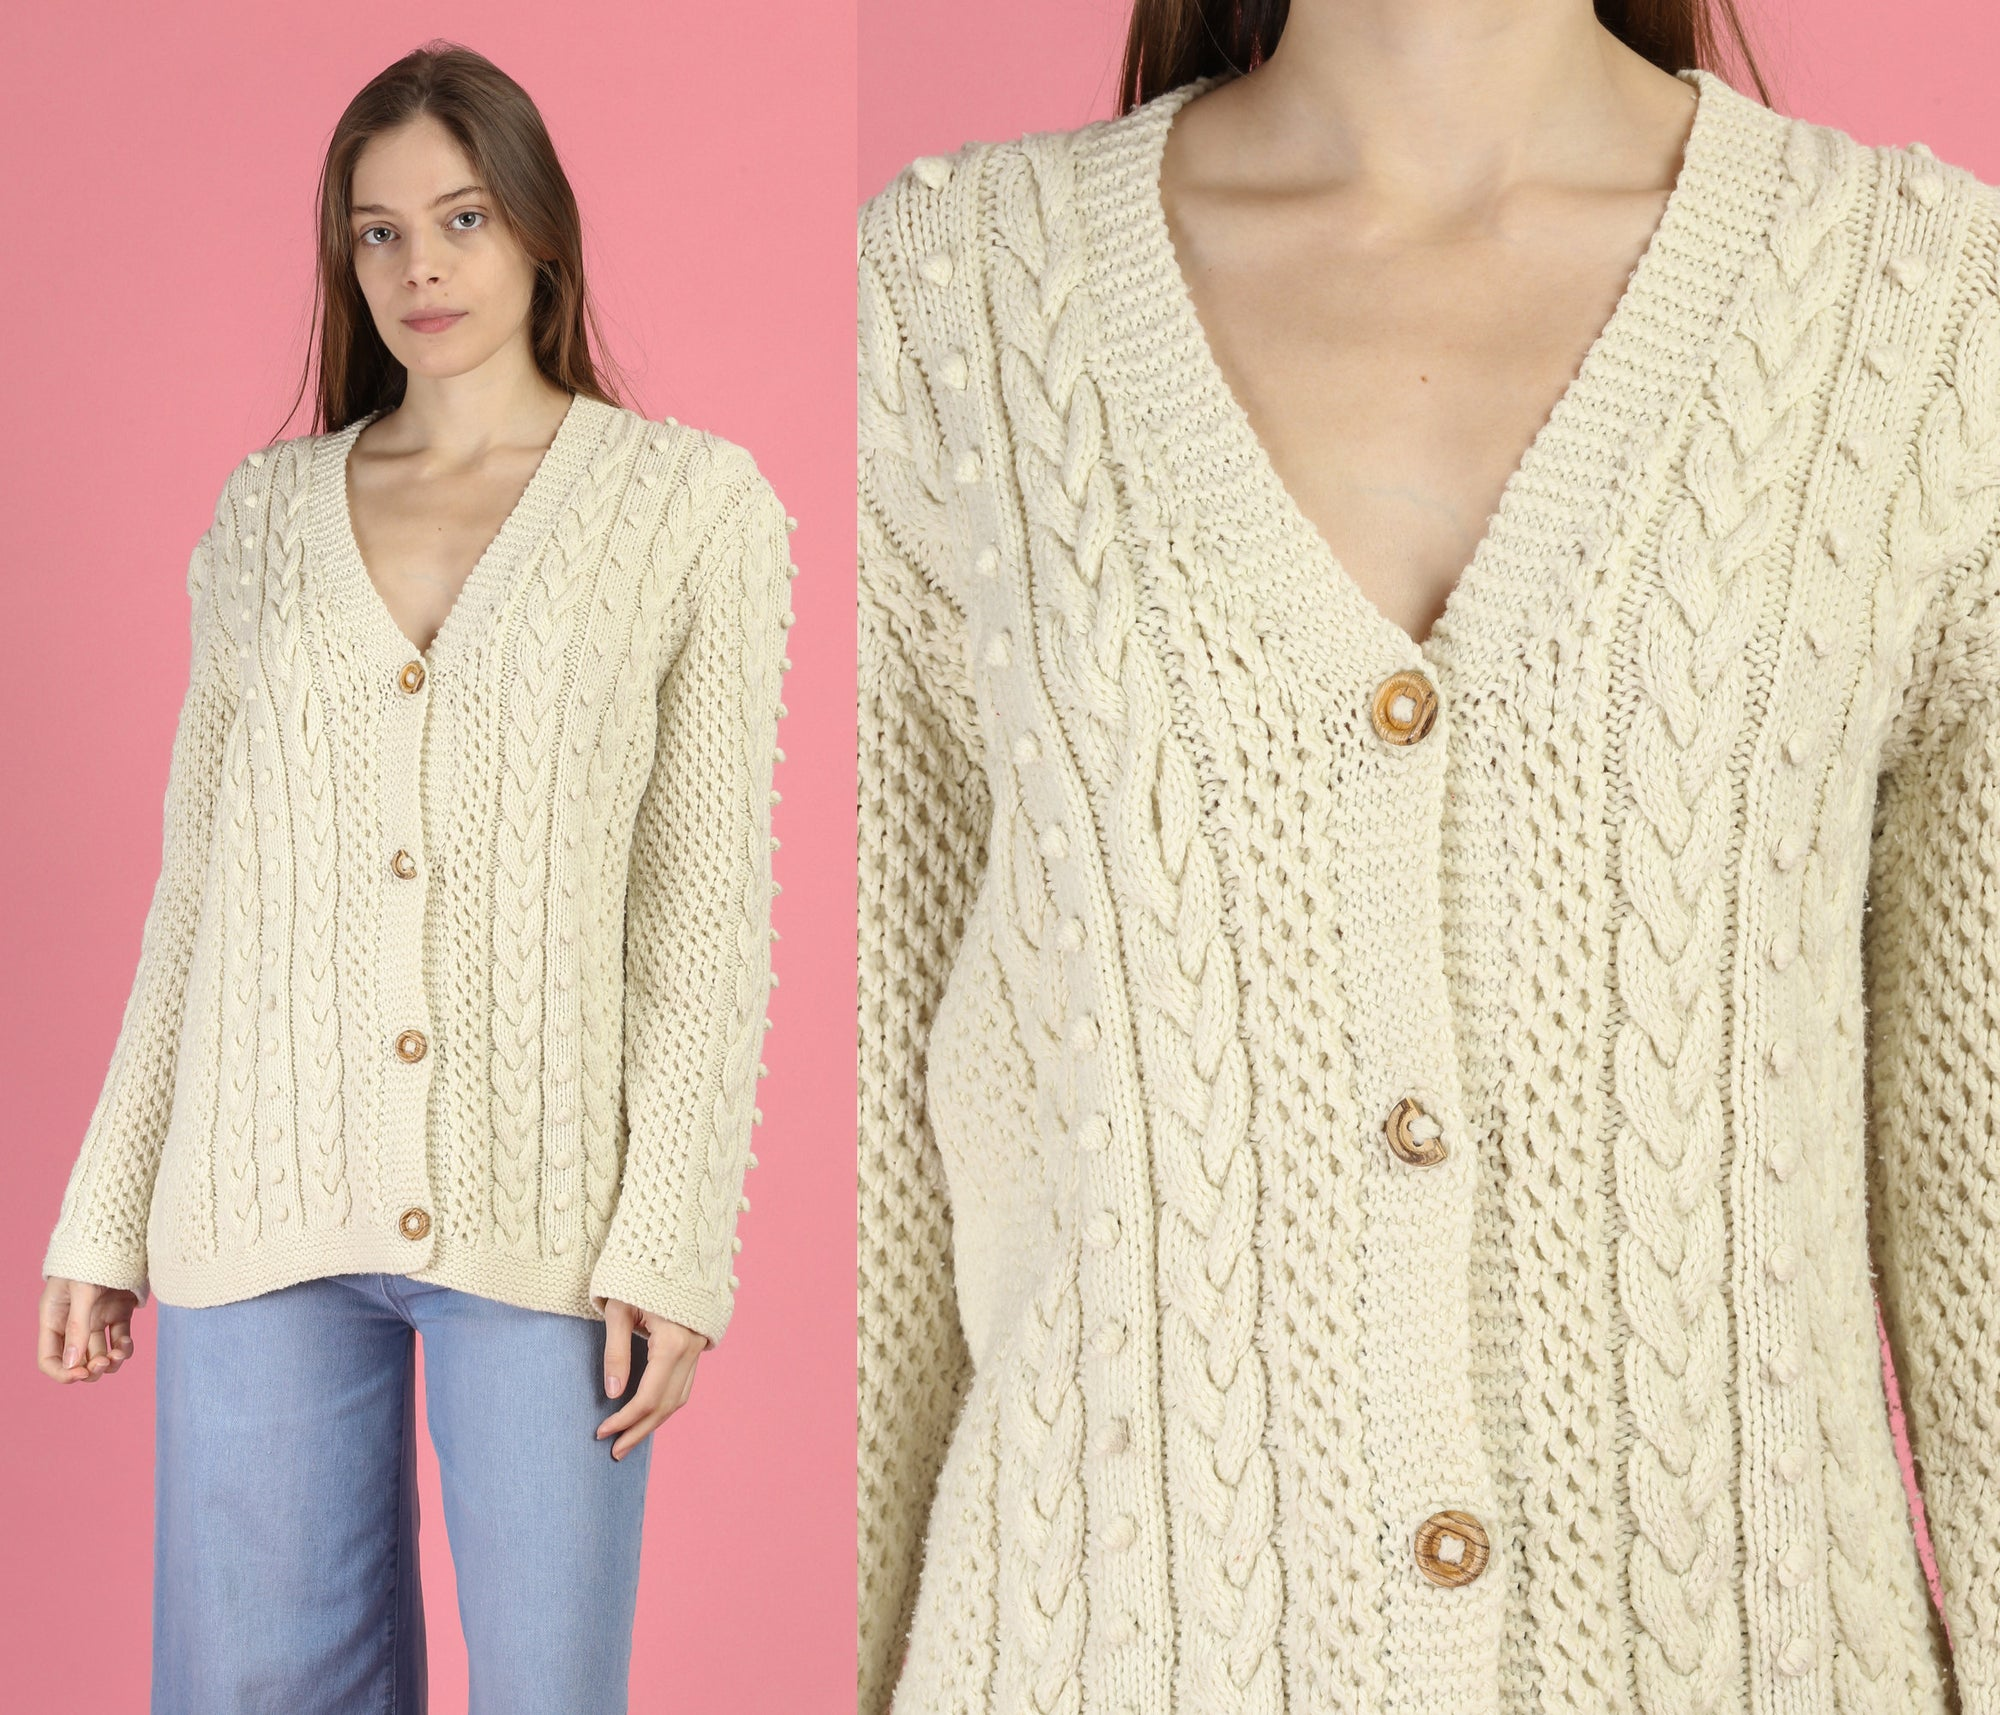 70s Popcorn Cable Knit Cardigan - Large